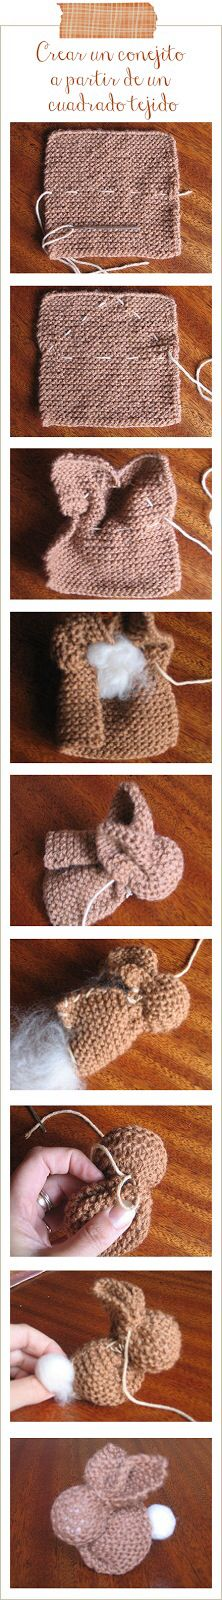 Perfect for my knitting friend who only knits squares. Easter Crochet, Crochet Bunny, Crochet For Kids, Yarn Crafts, Diy Crafts, Crafts To Make, Arts And Crafts, Loom Knitting Projects, Bunny Crafts